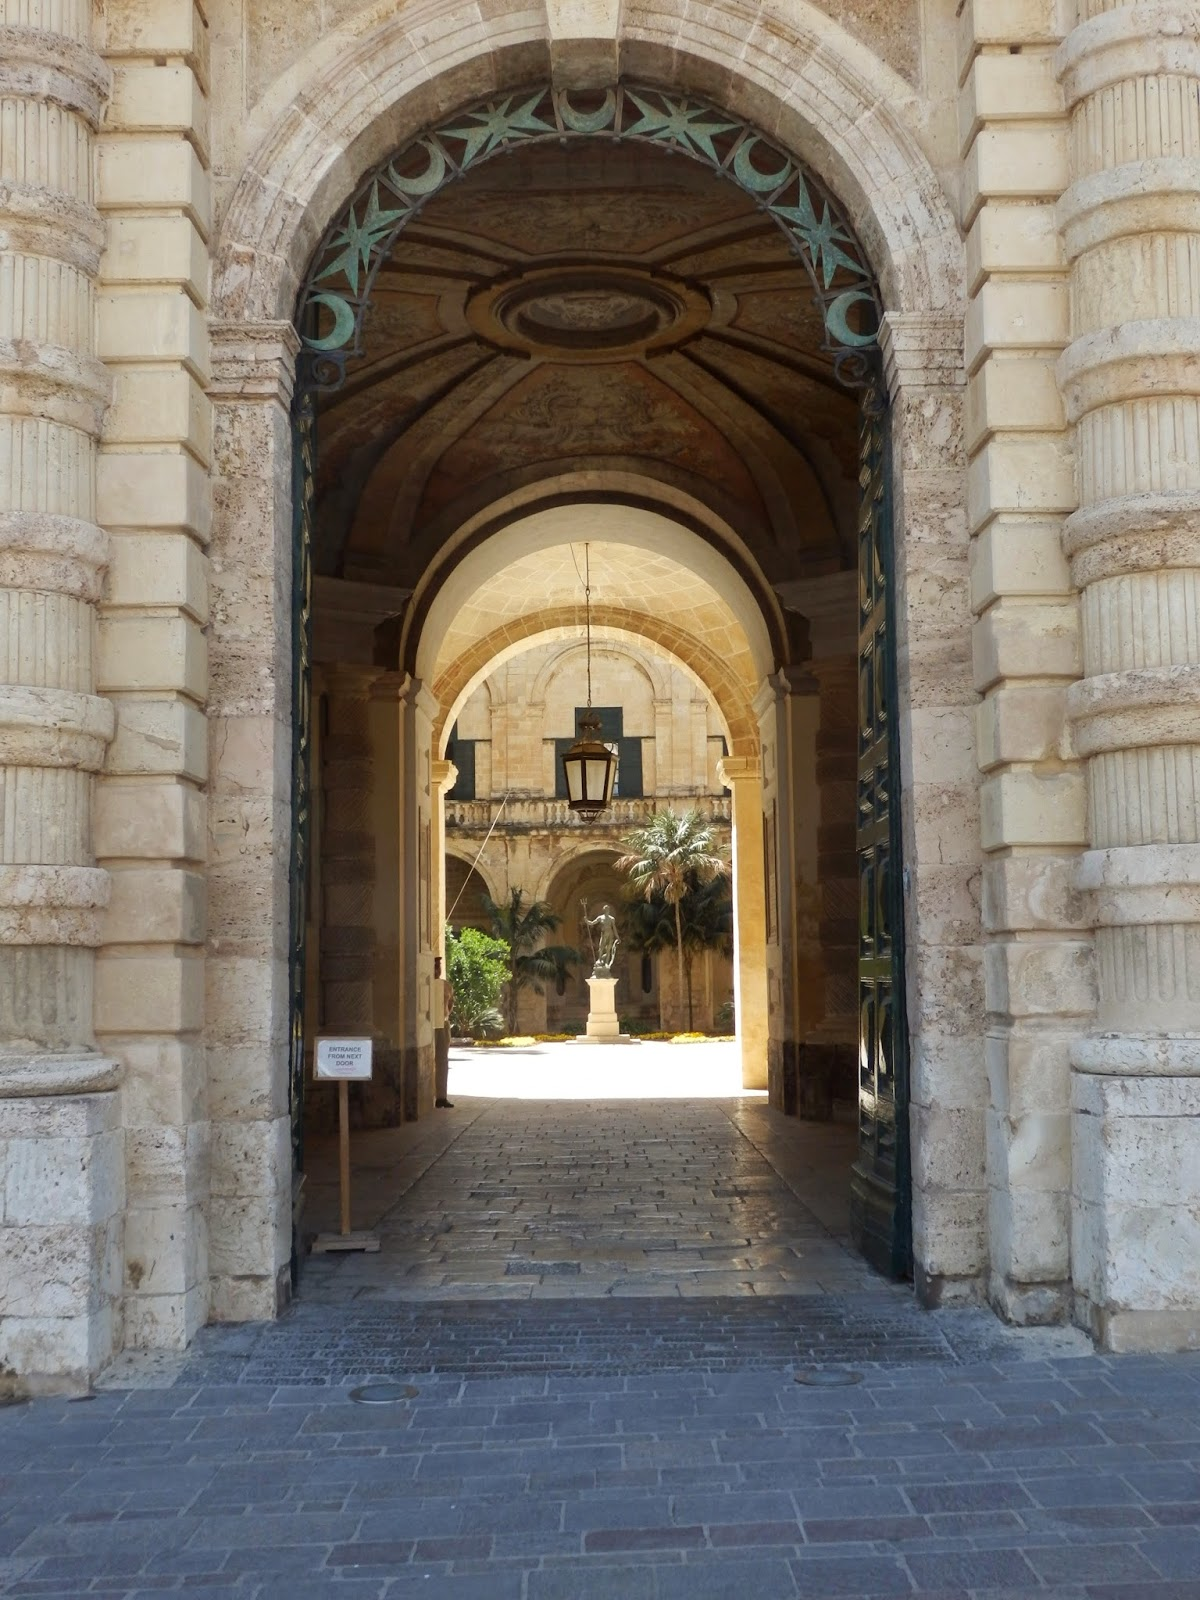 Archway to the Palace in Valletta